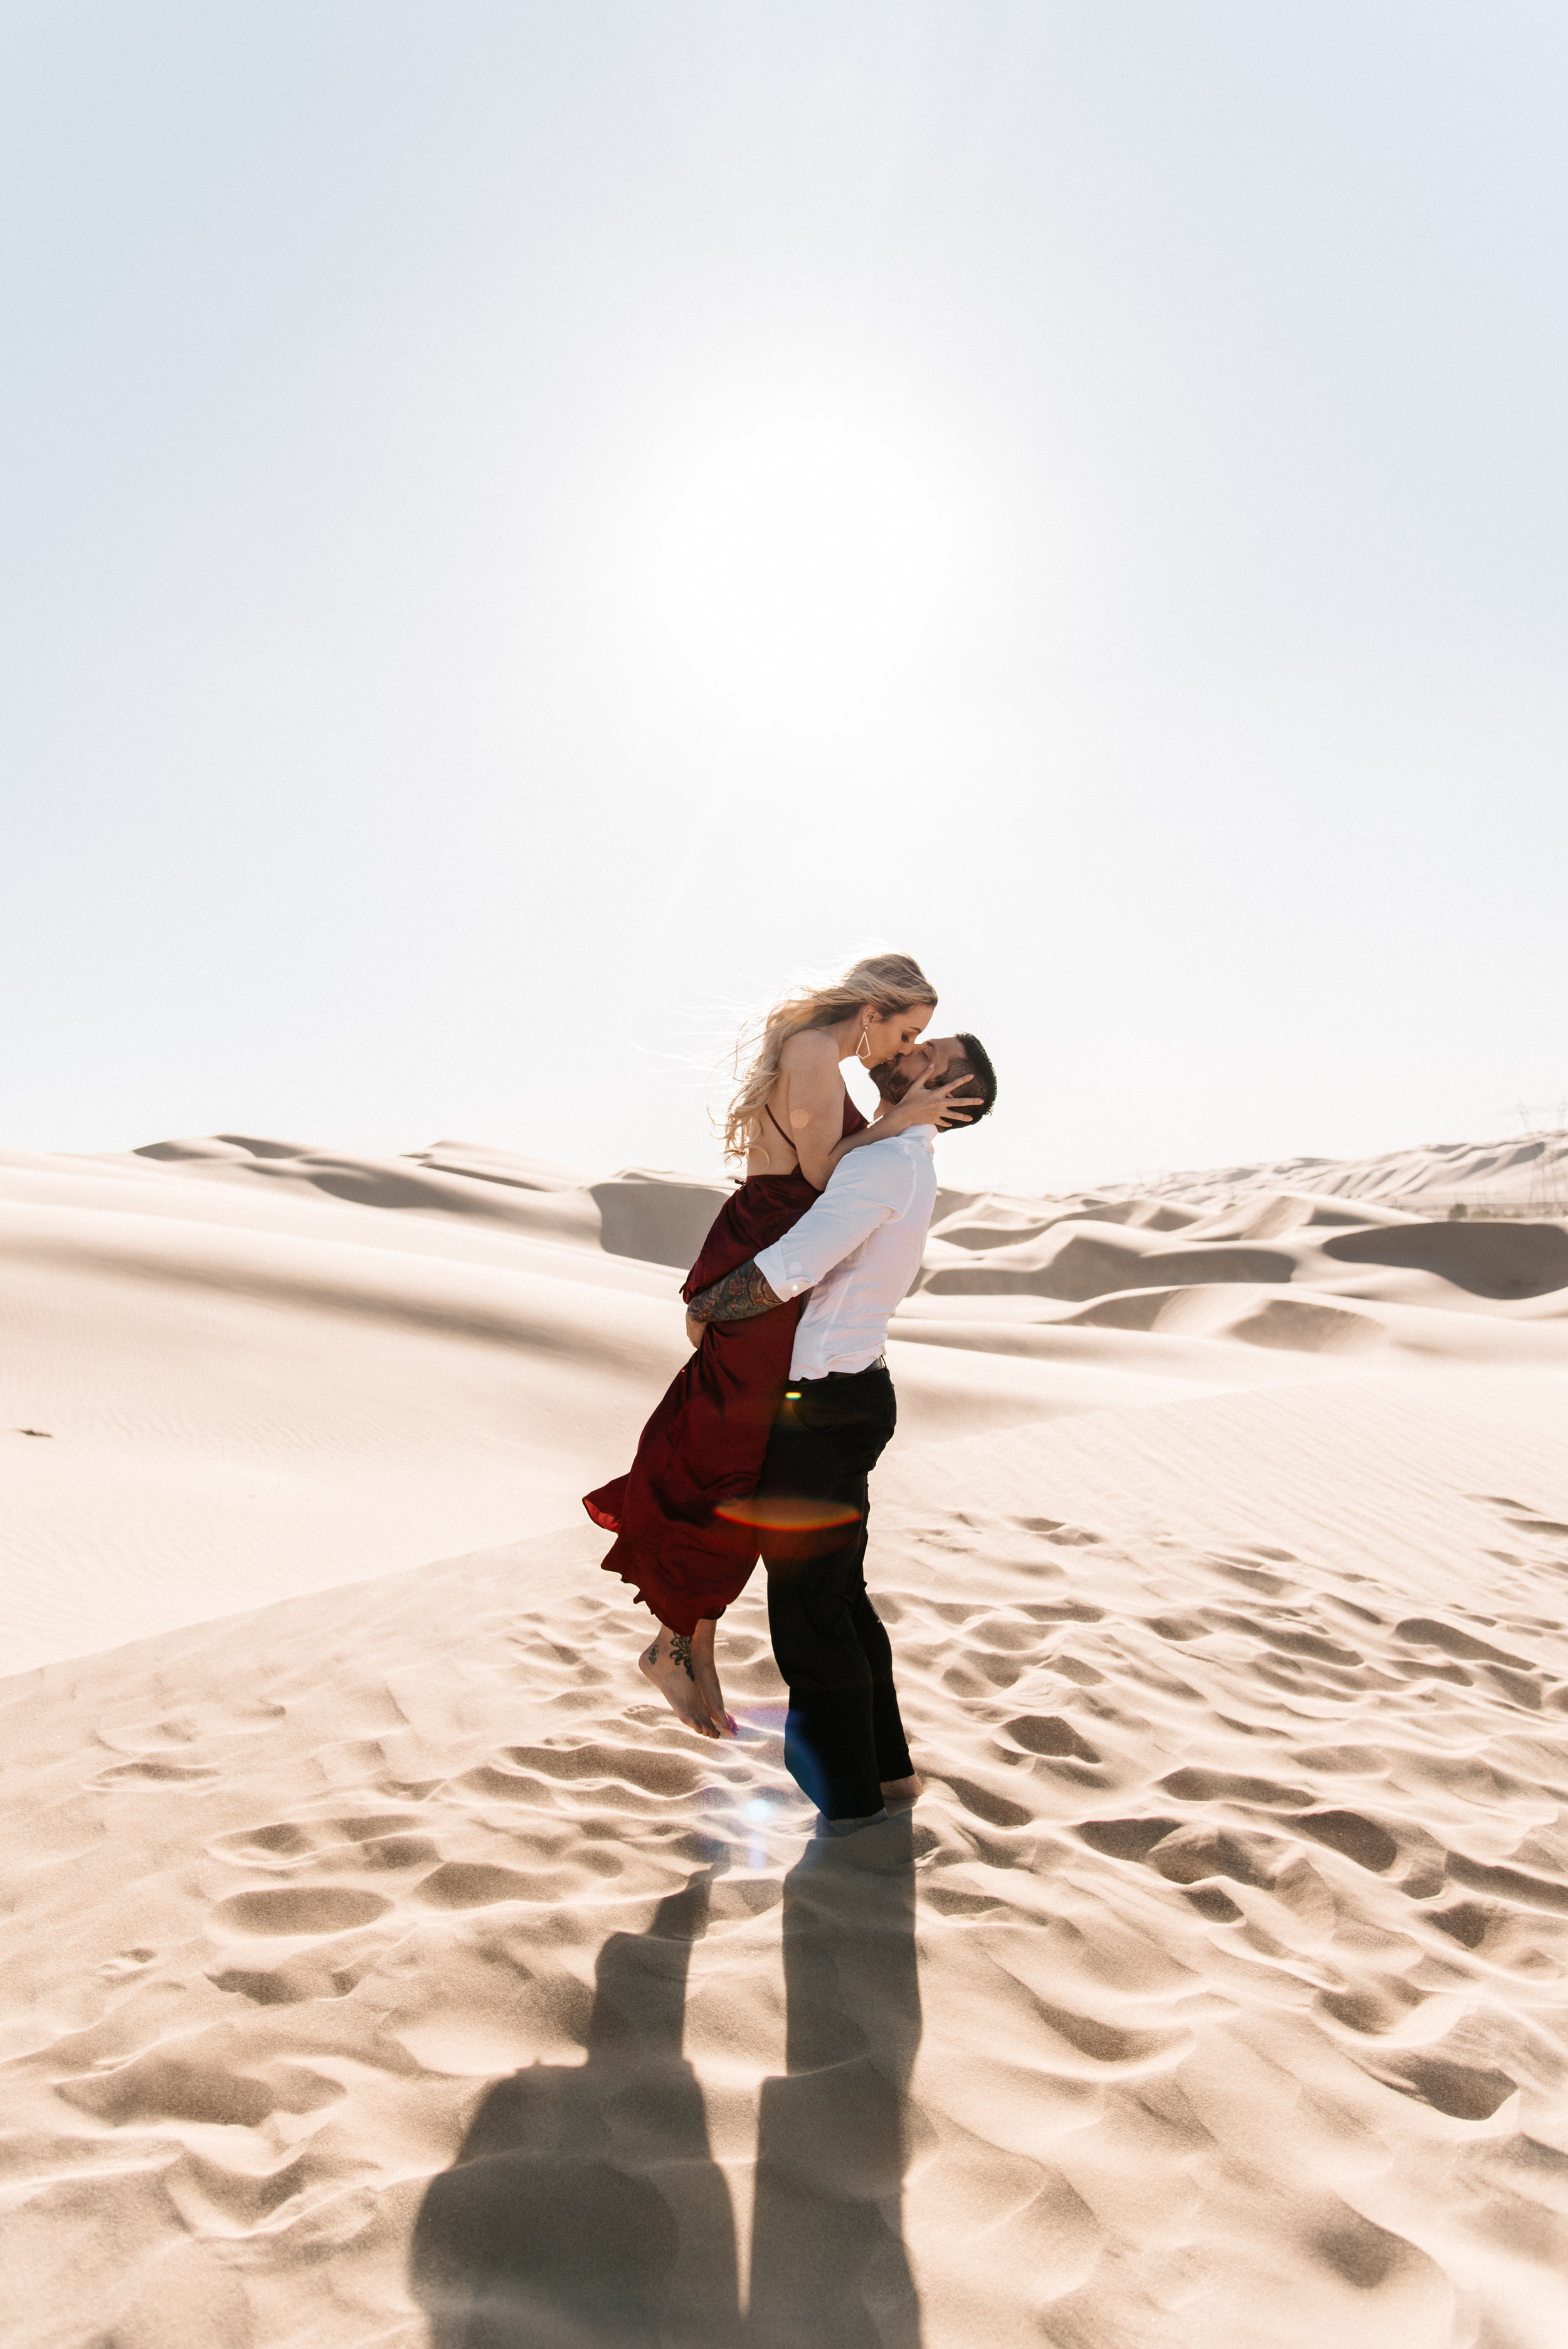 SamErica Studios - Modern San Diego Engagement Photographer - Adventure Engagement Session in Glamis Sand Dunes California-26.jpg